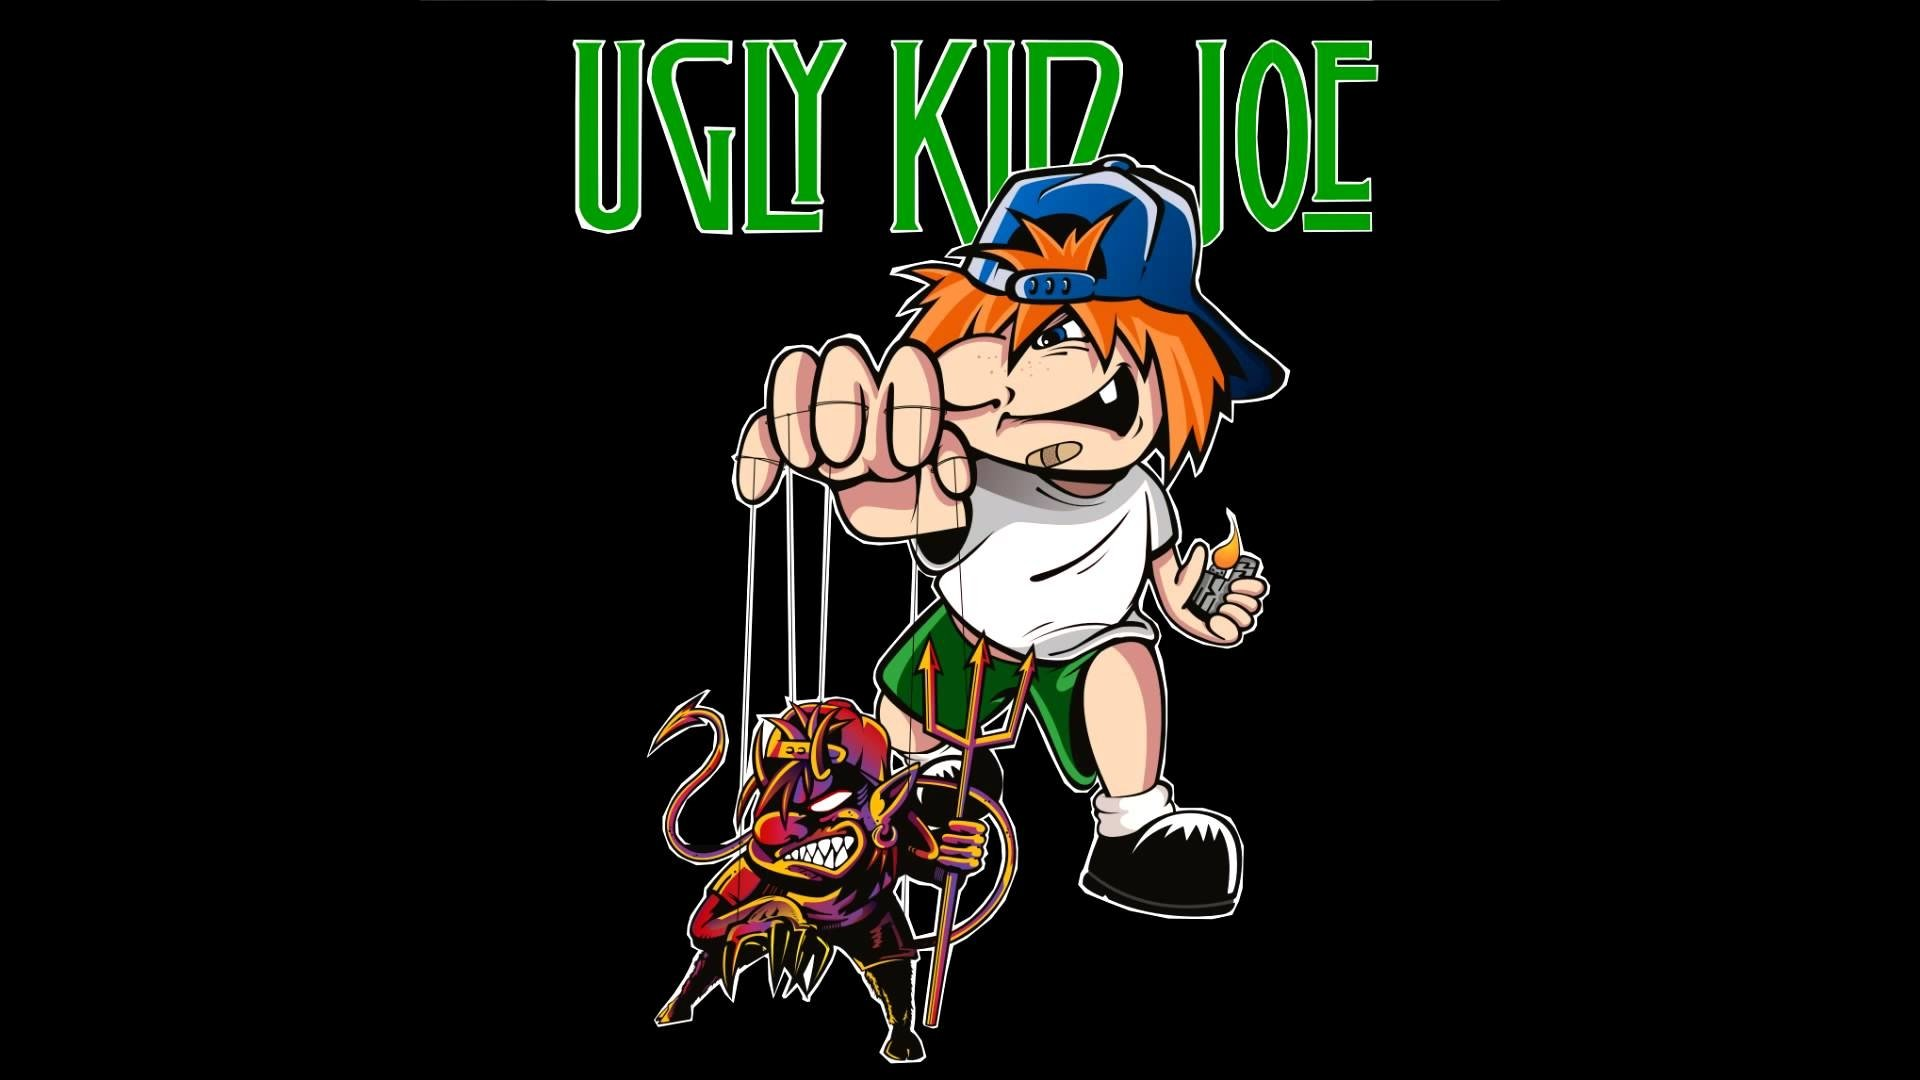 1 Ugly Kid Joe Hd Wallpapers Background Images Wallpaper Abyss